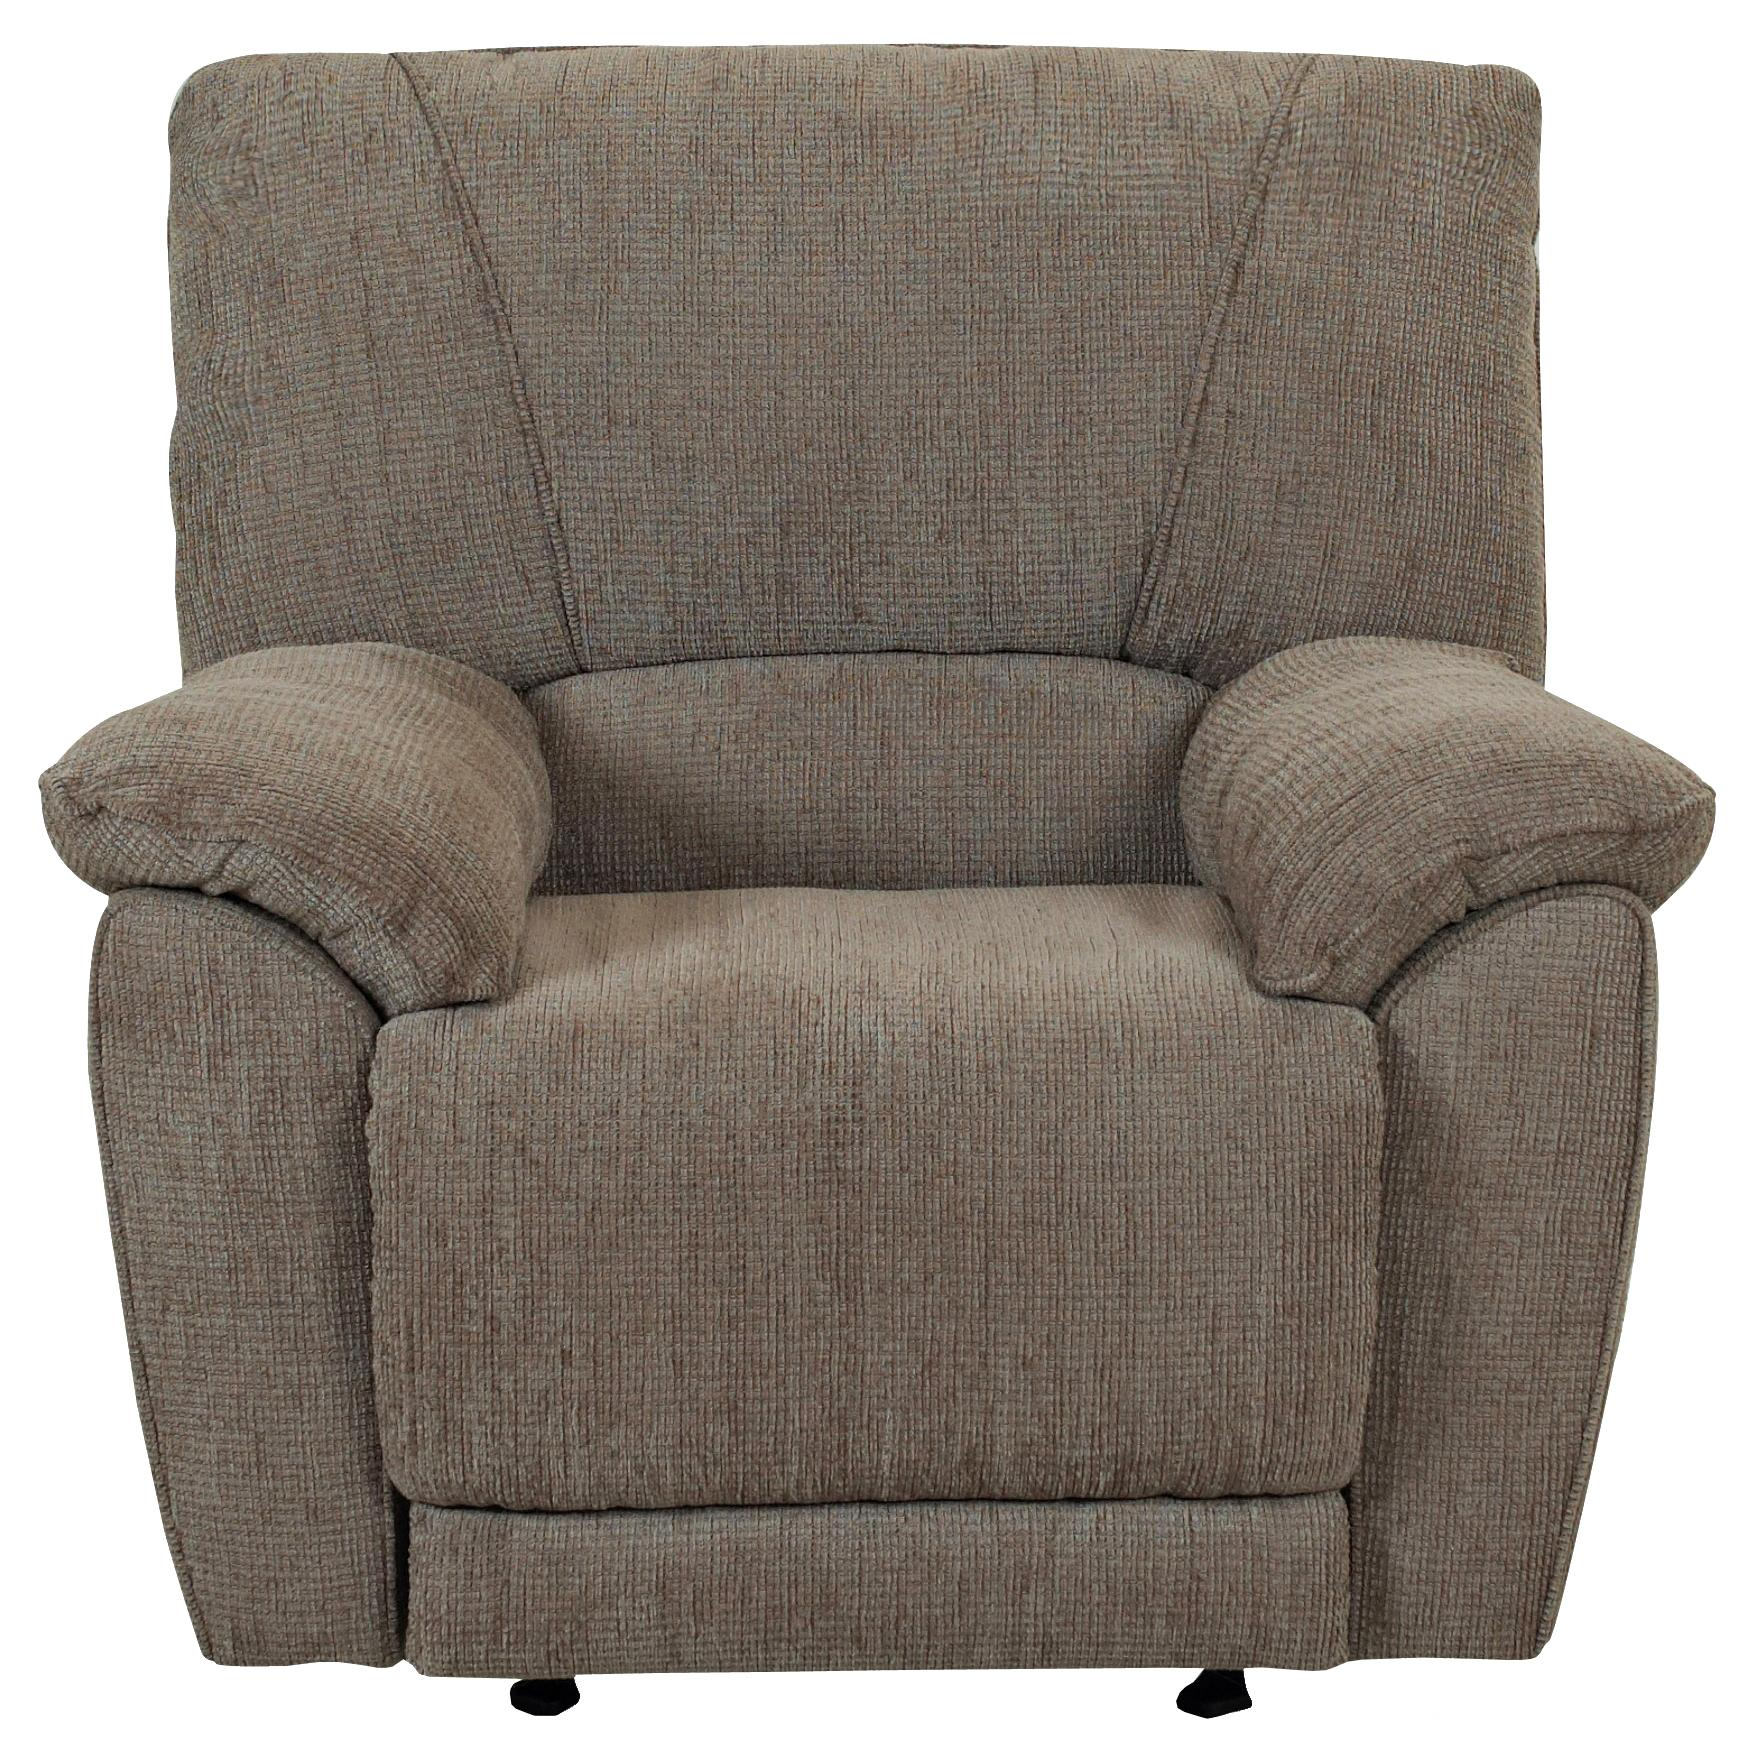 Klaussner Laredo  Power Reclining Chair - Item Number: 57903 PWRC